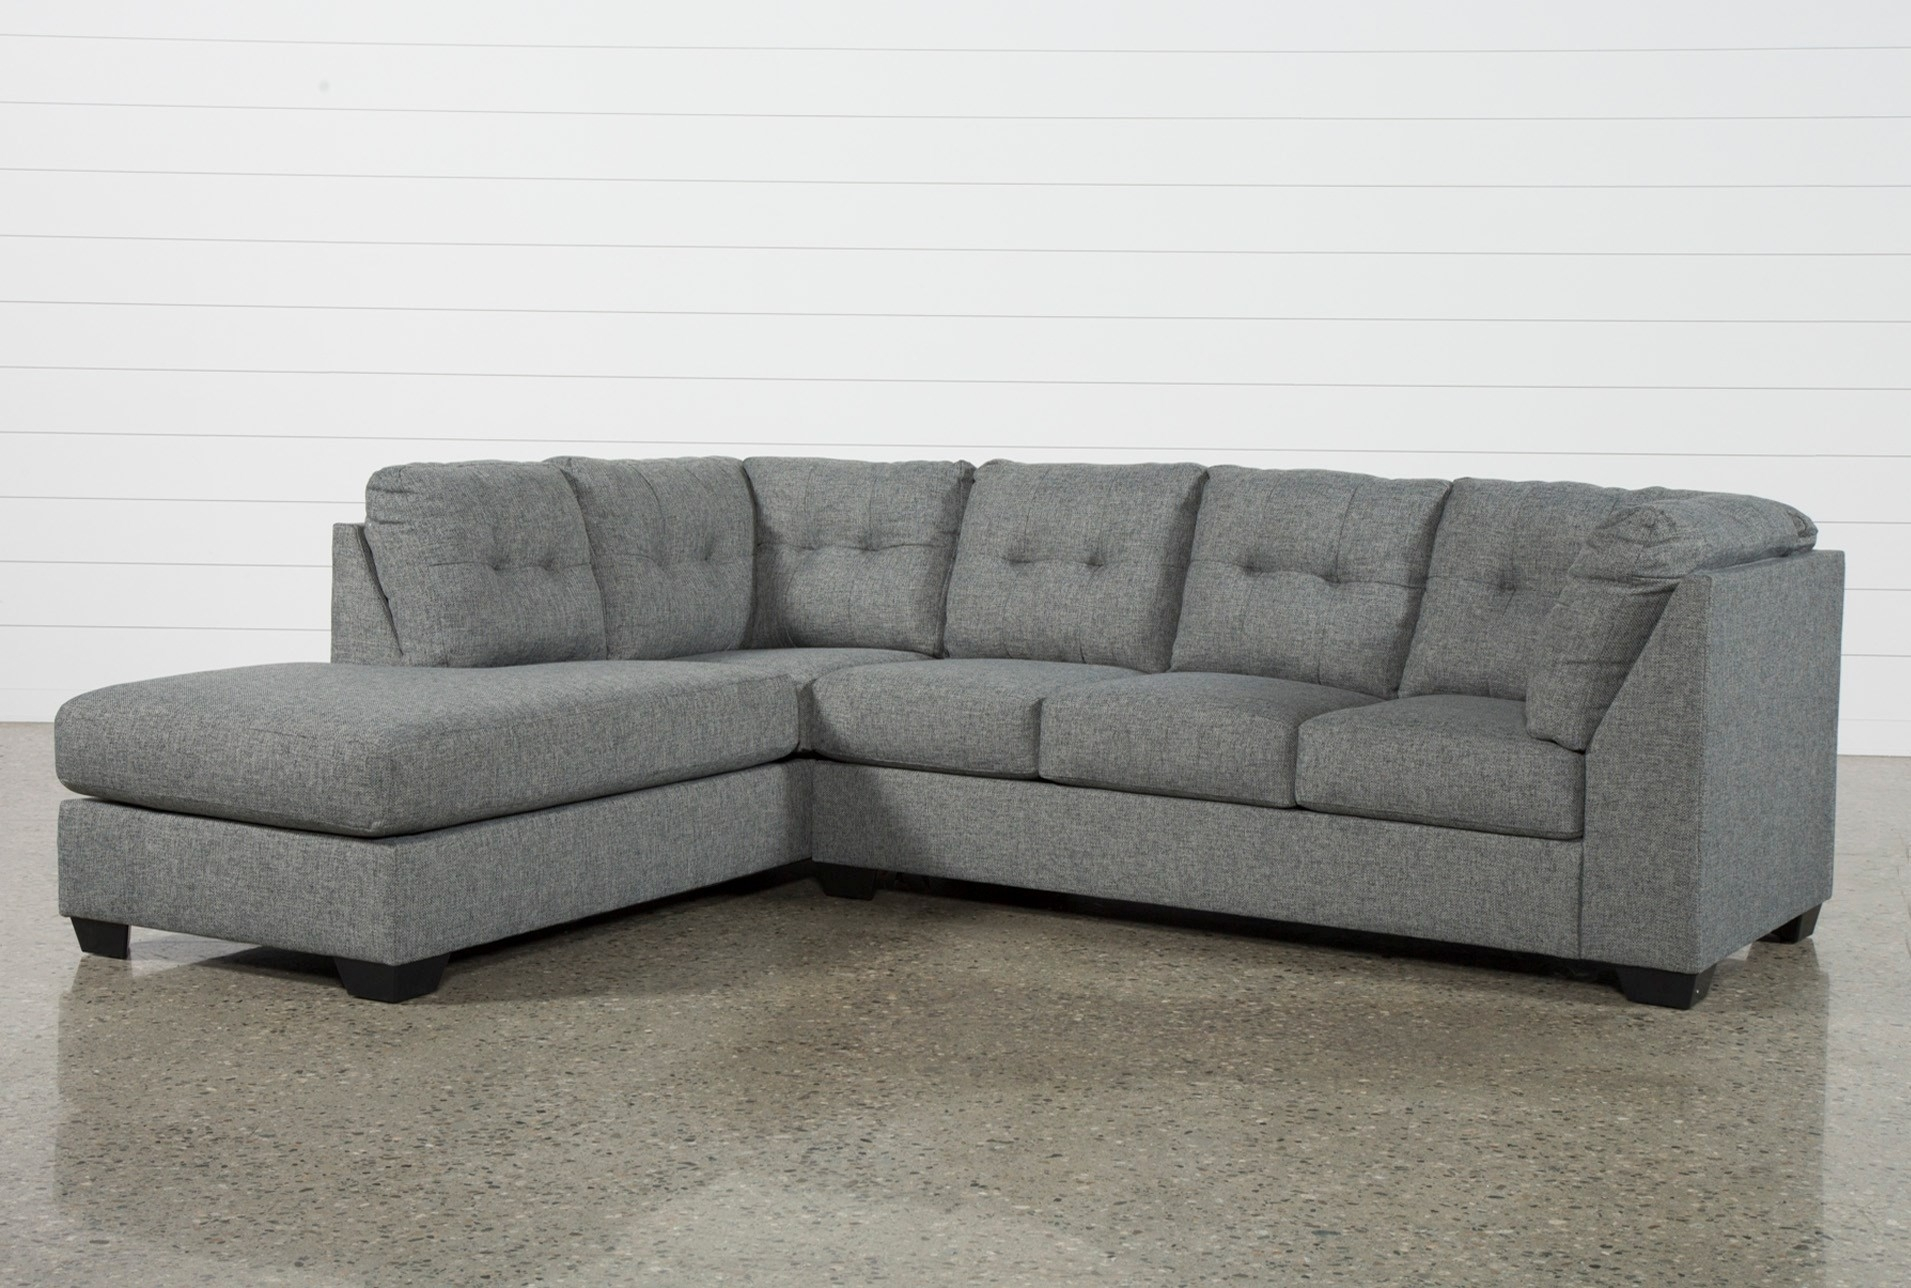 2 Piece Sectional Lucy Grey W Laf Chaise Living Spaces 225935 Fabric with regard to Lucy Dark Grey 2 Piece Sectionals With Raf Chaise